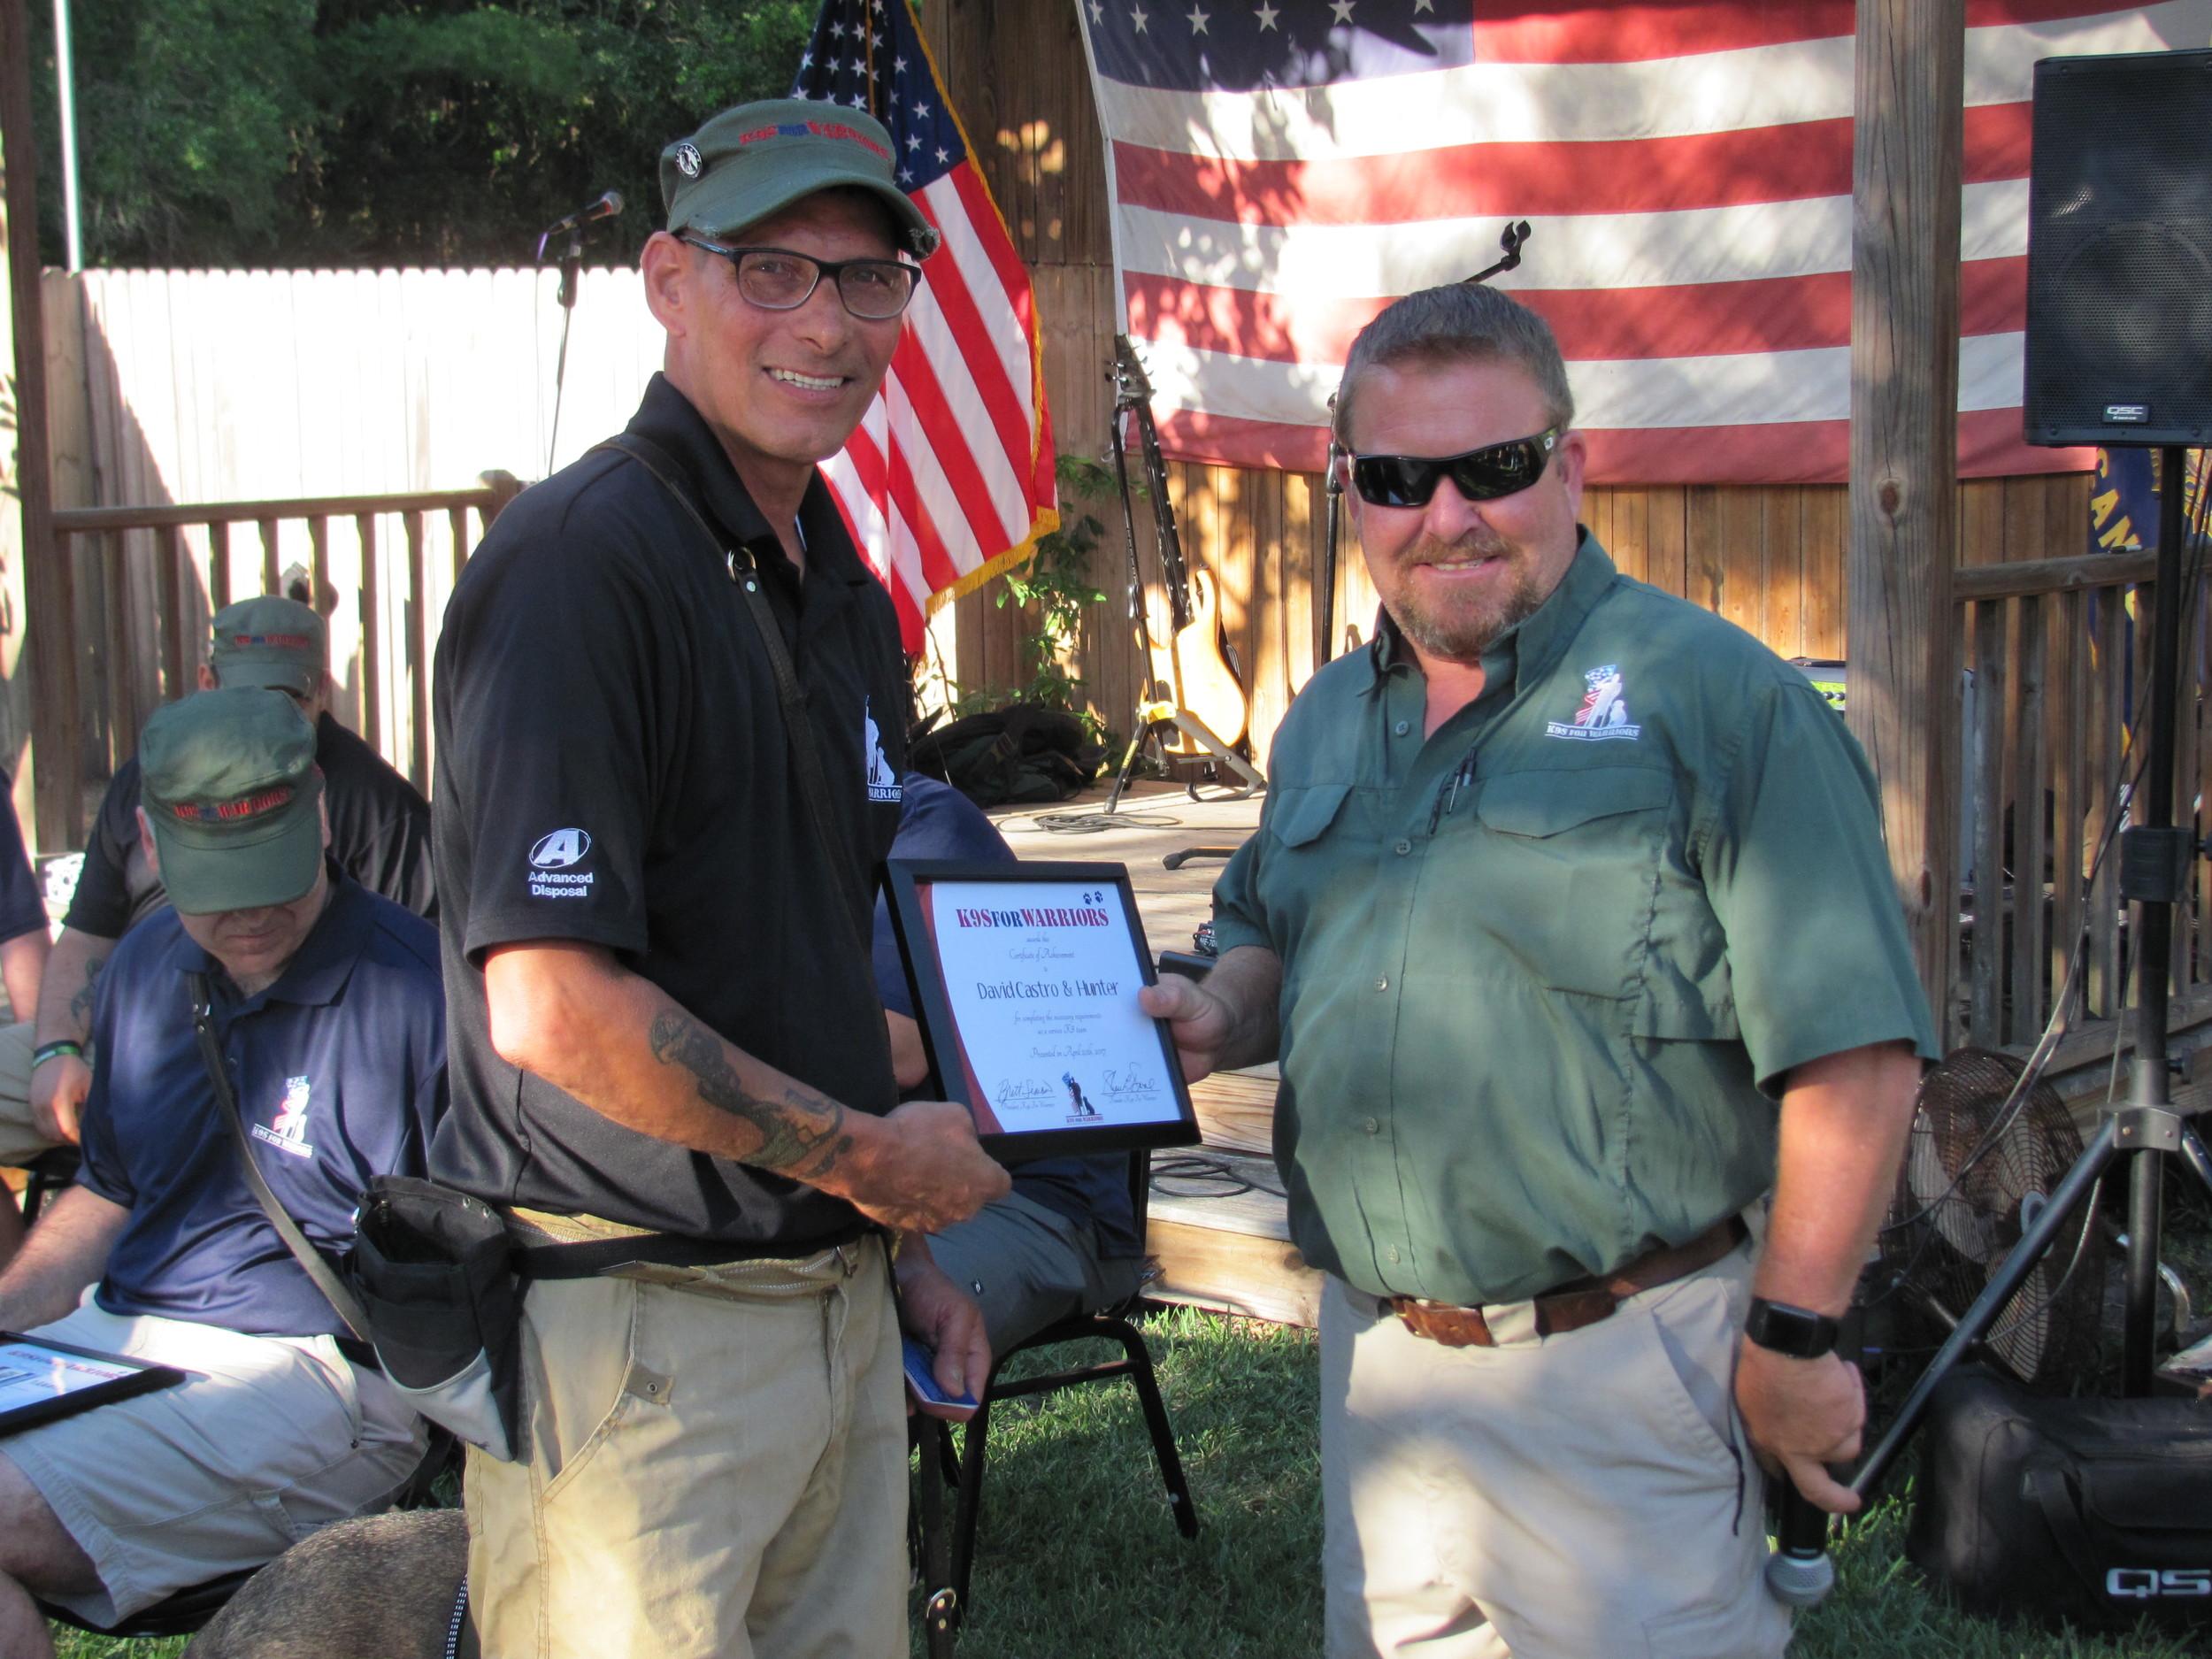 David Castro receives his graduation certificate from K9s for Warriors' Brett Simon.